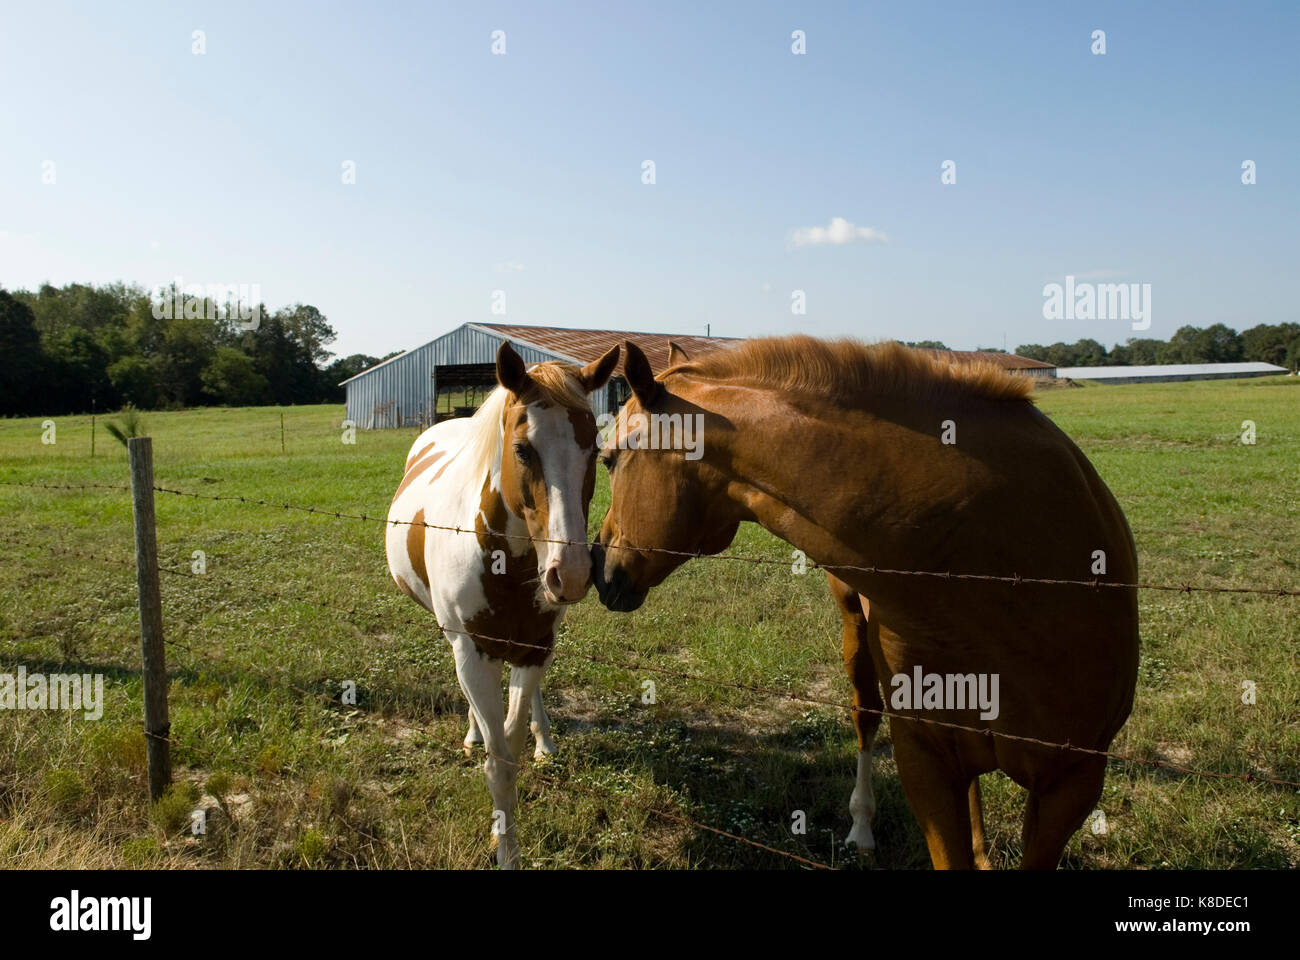 Two horses kissing, USA. Concept of love and attraction. - Stock Image